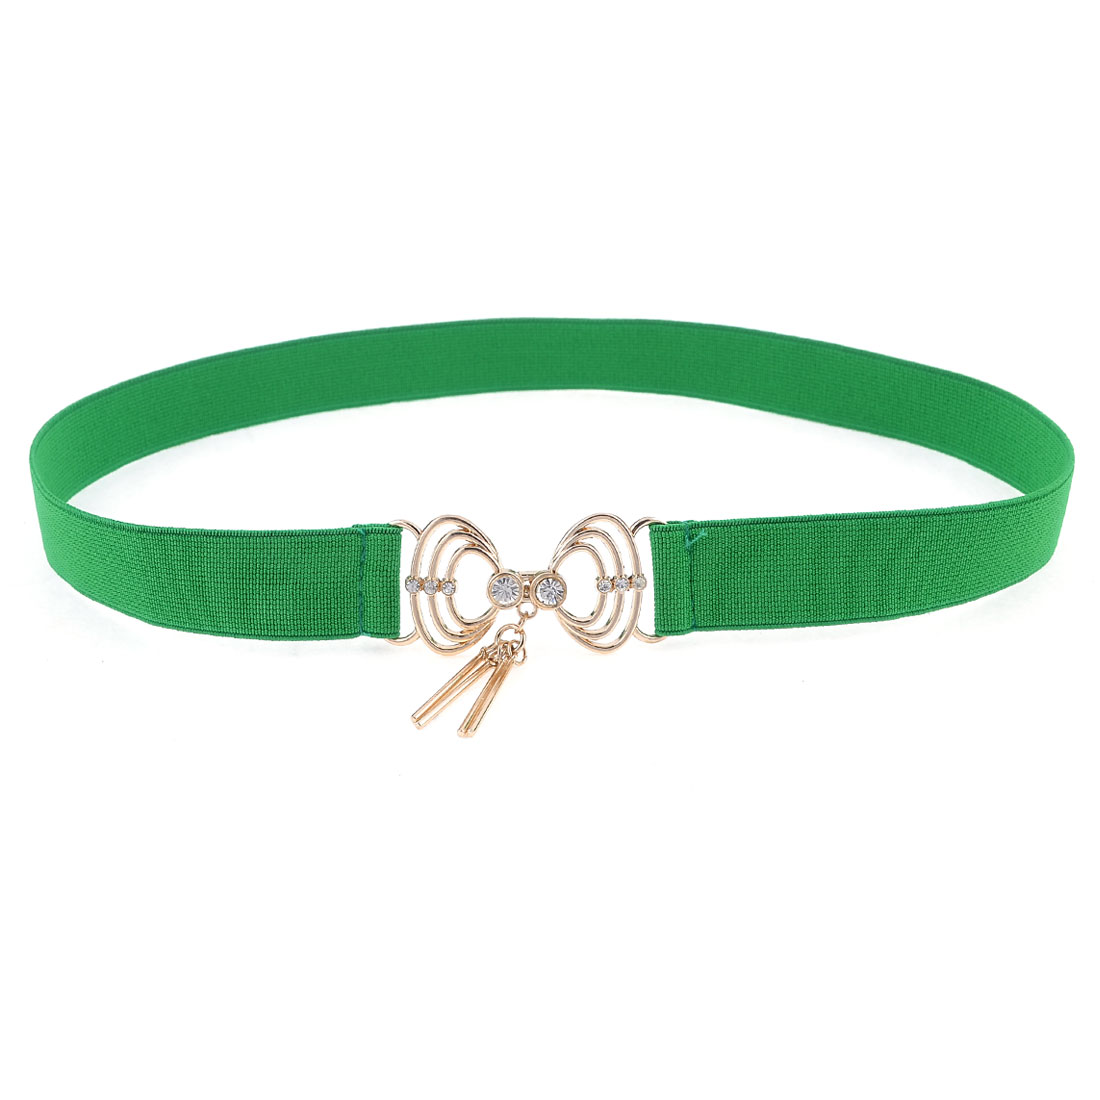 Lady Green Shell Design Interlock Buckle Elastic Cinch Belt